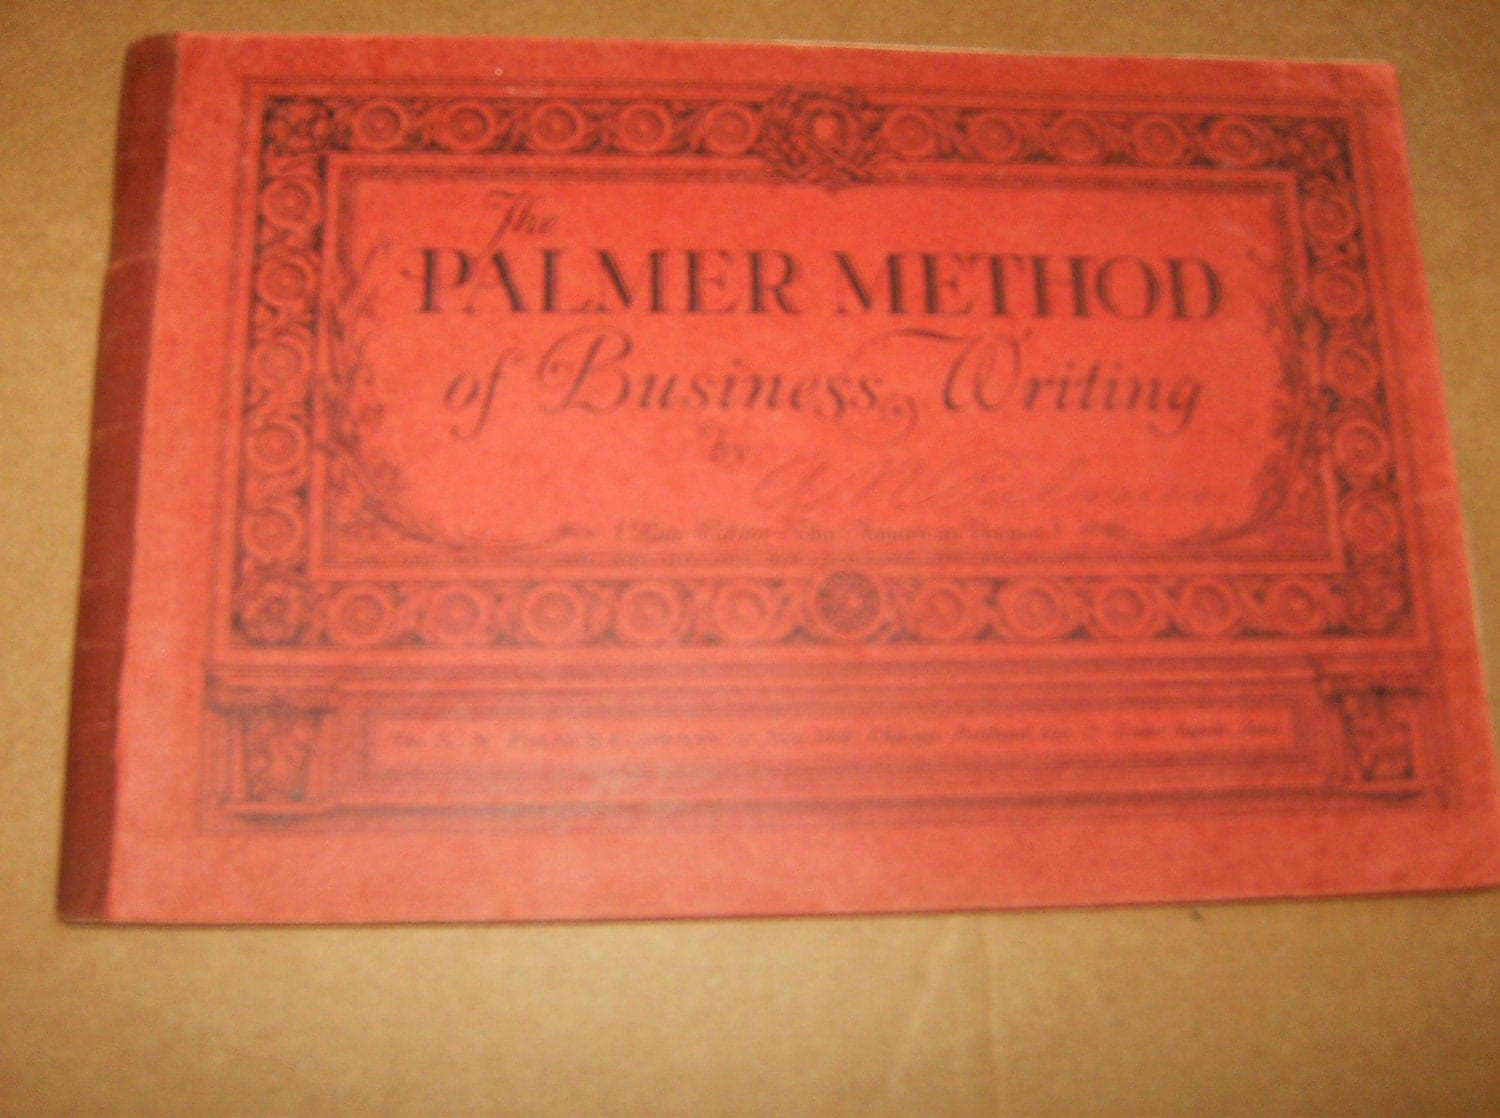 Items Similar To The Palmer Method Of Business